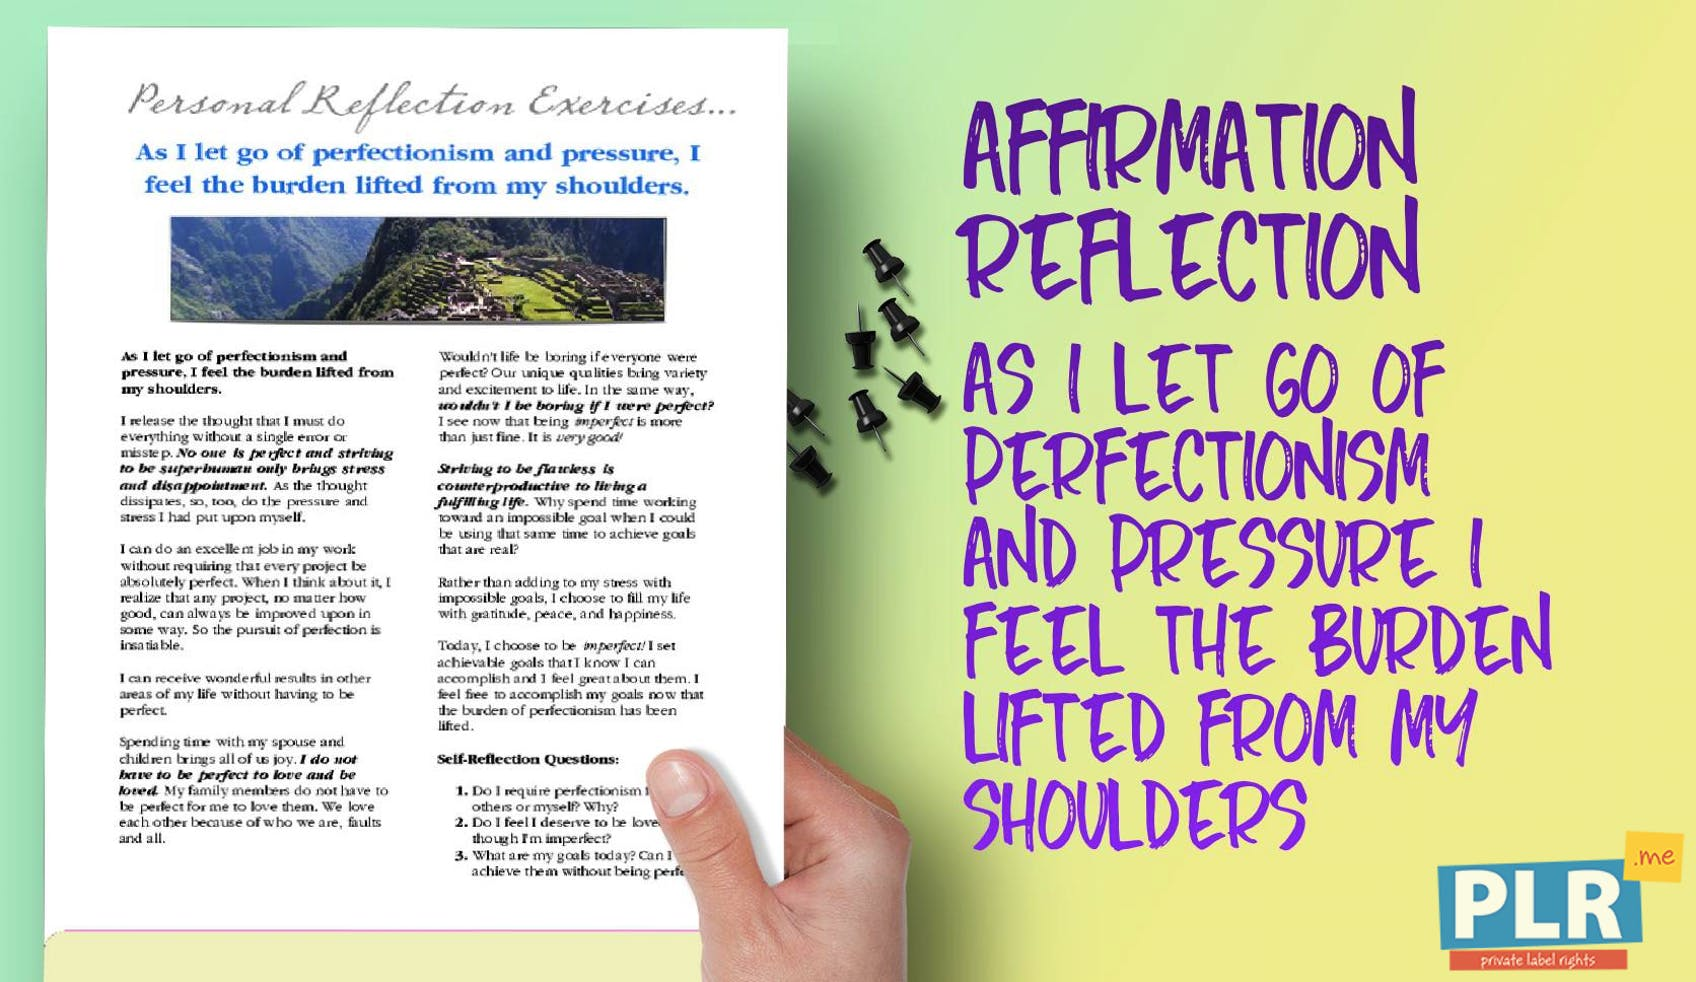 As I Let Go Of Perfectionism And Pressure I Feel The Burden Lifted From My Shoulders